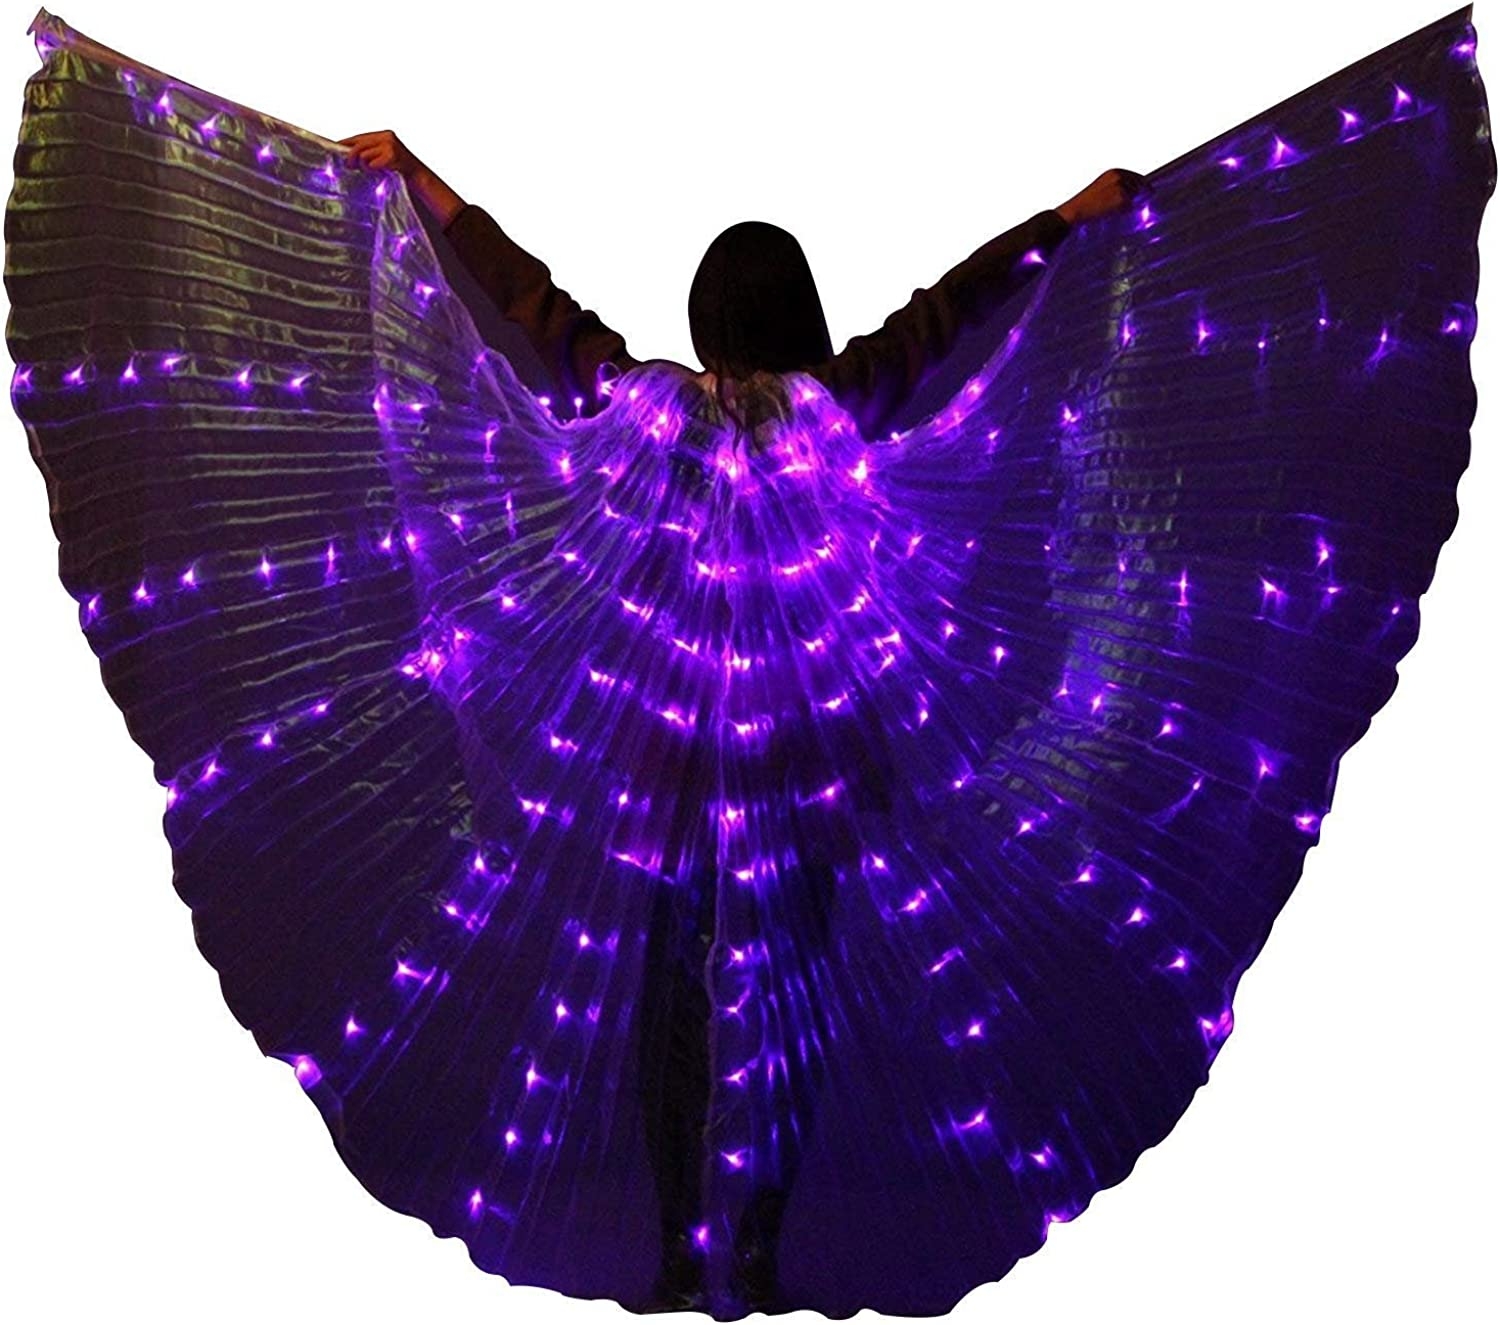 GUOCHU Adult Stage LED ISIS ! Super beauty product restock quality top! Wings Party Dance Lig Club Gifts Belly for